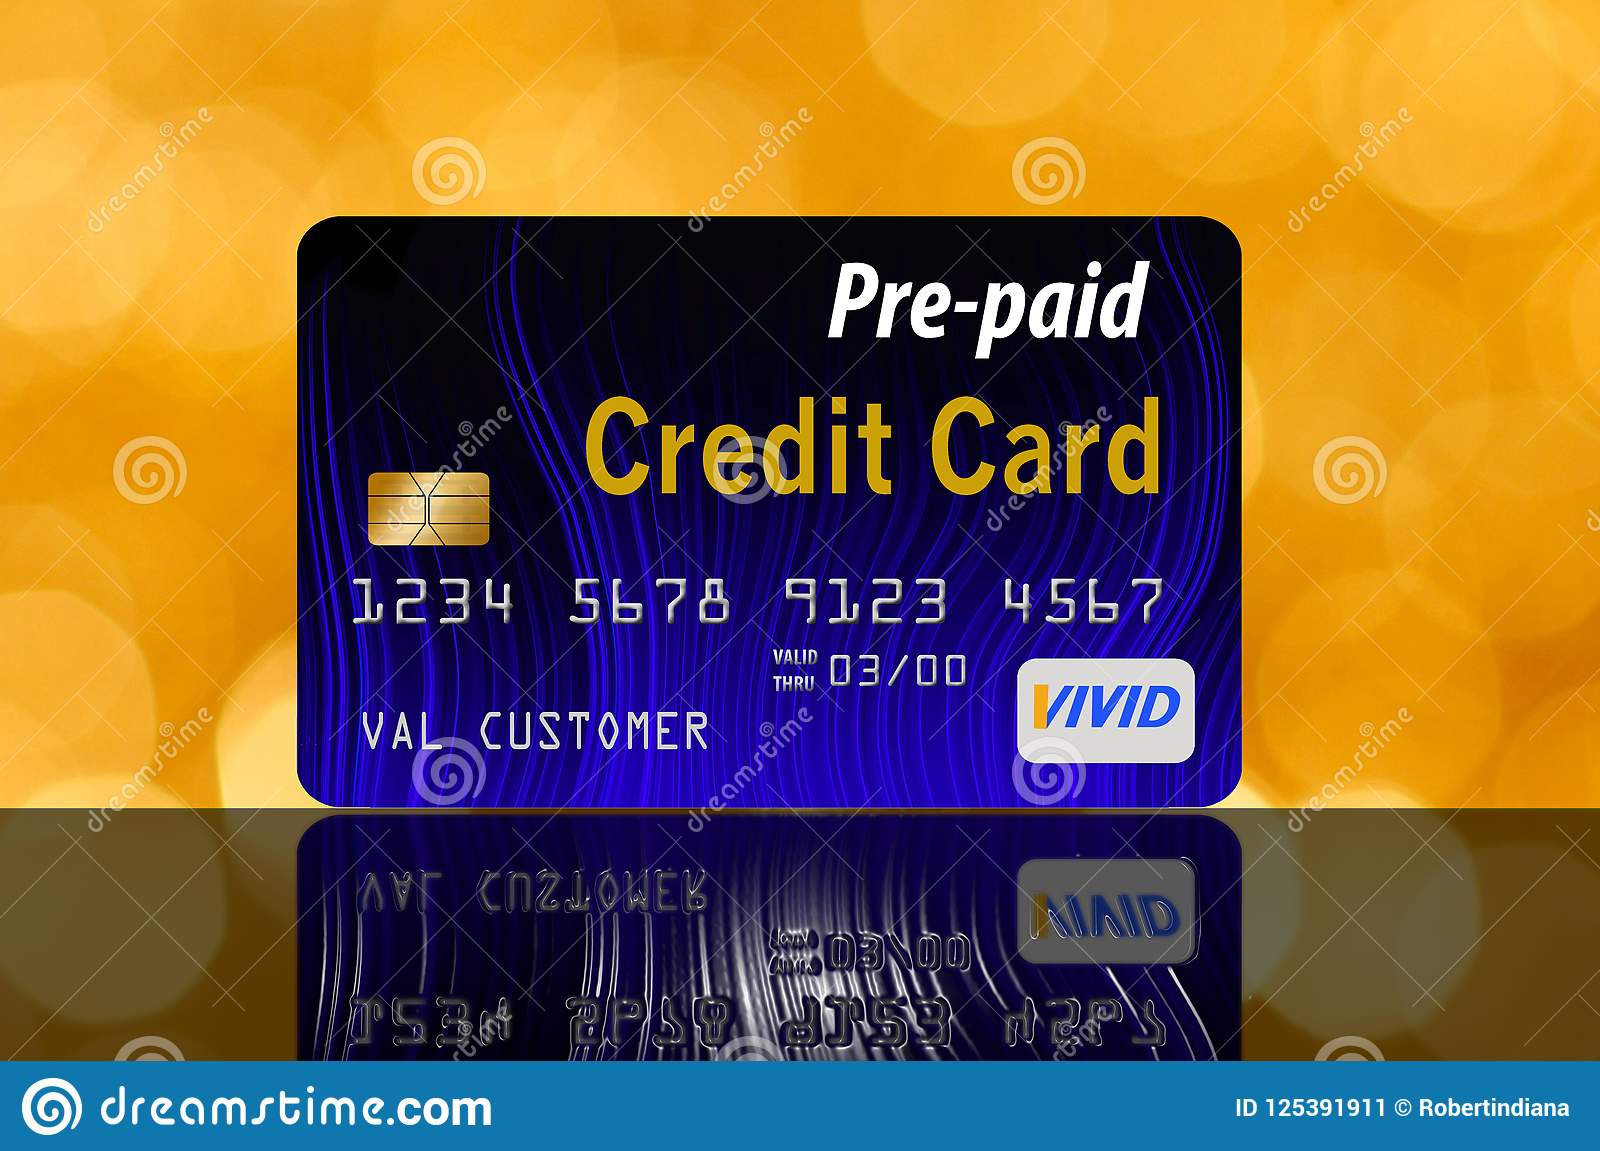 Prepaid Credit Card >> Here Is A Rechargeable Refillable Prepaid Credit Card